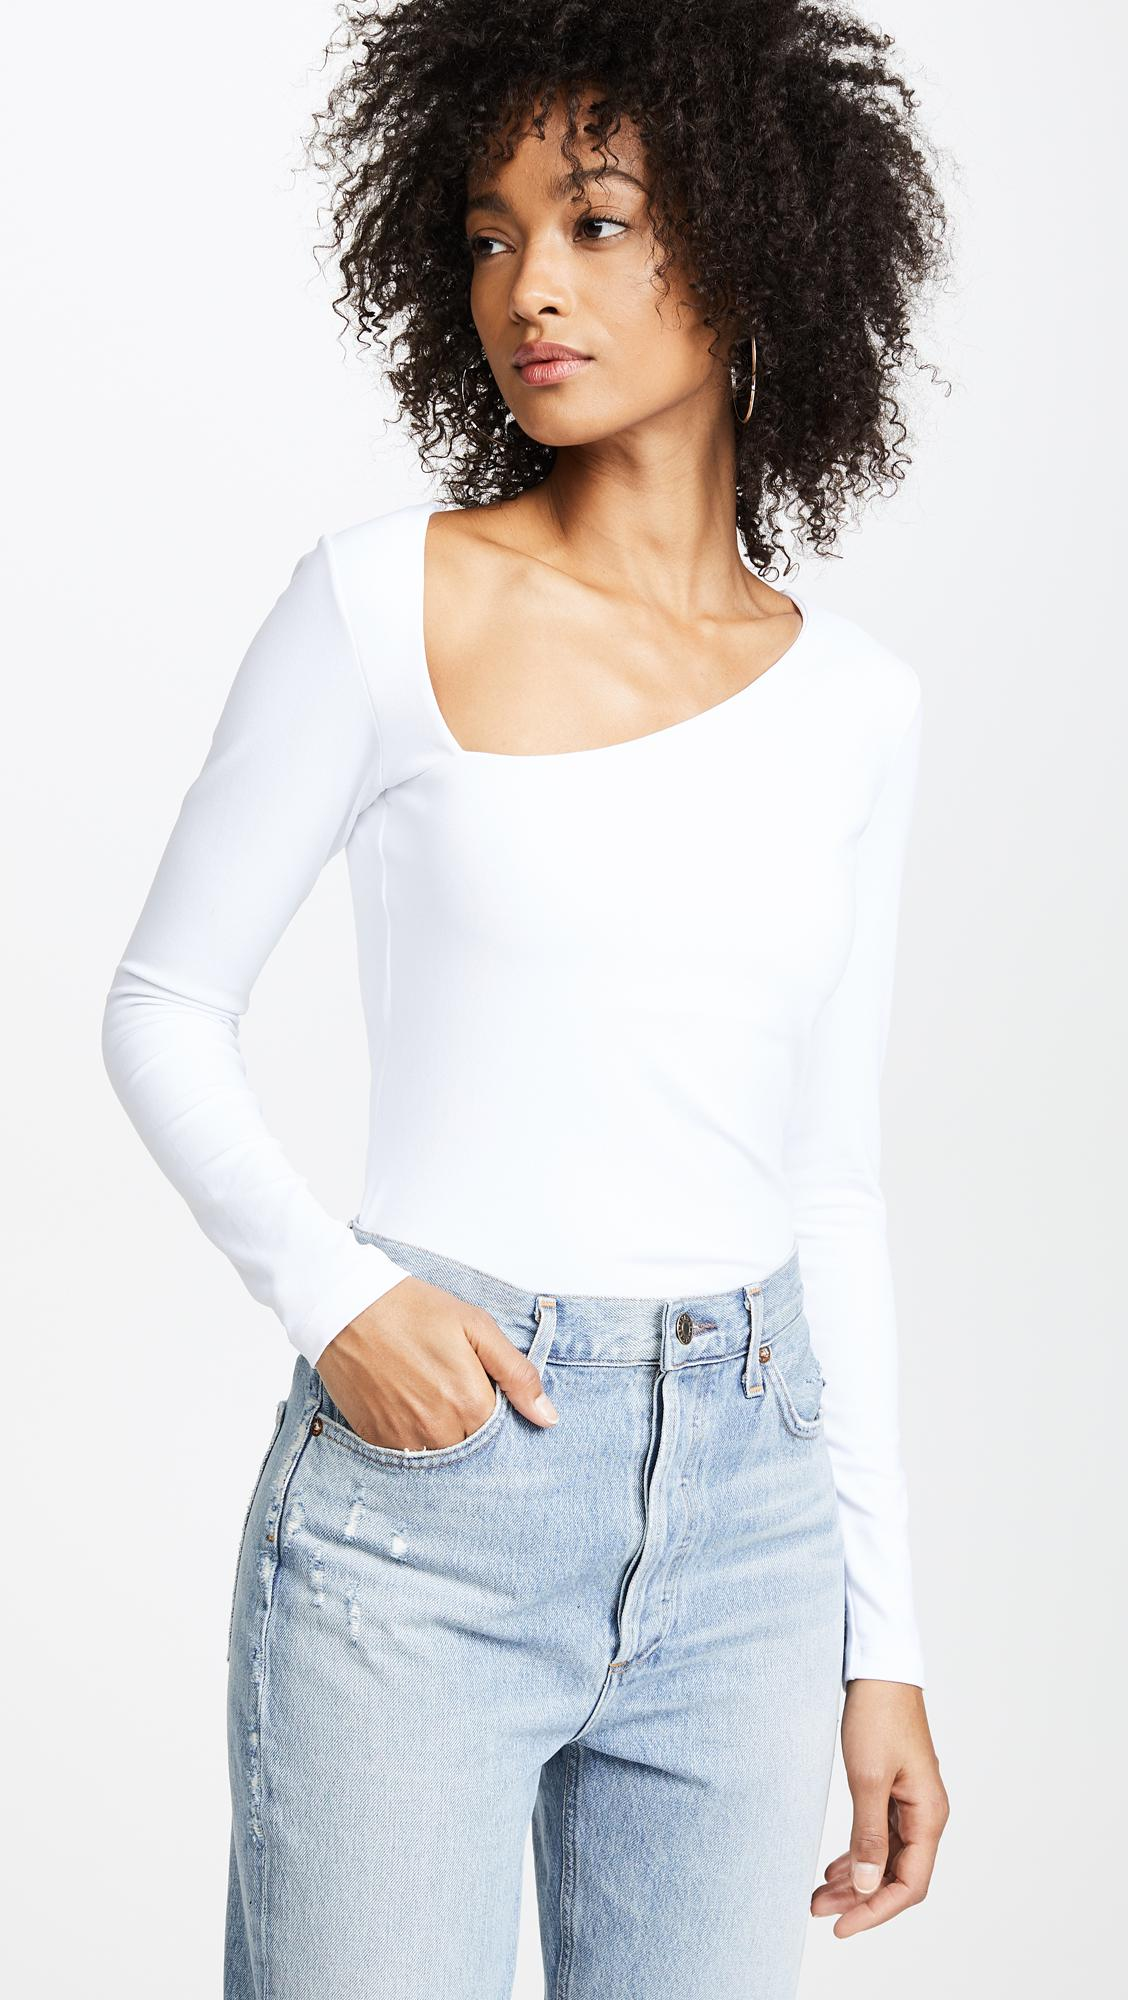 b0c4e270371e5 Lyst - Susana Monaco Laurene Diagonal Neck Top in White